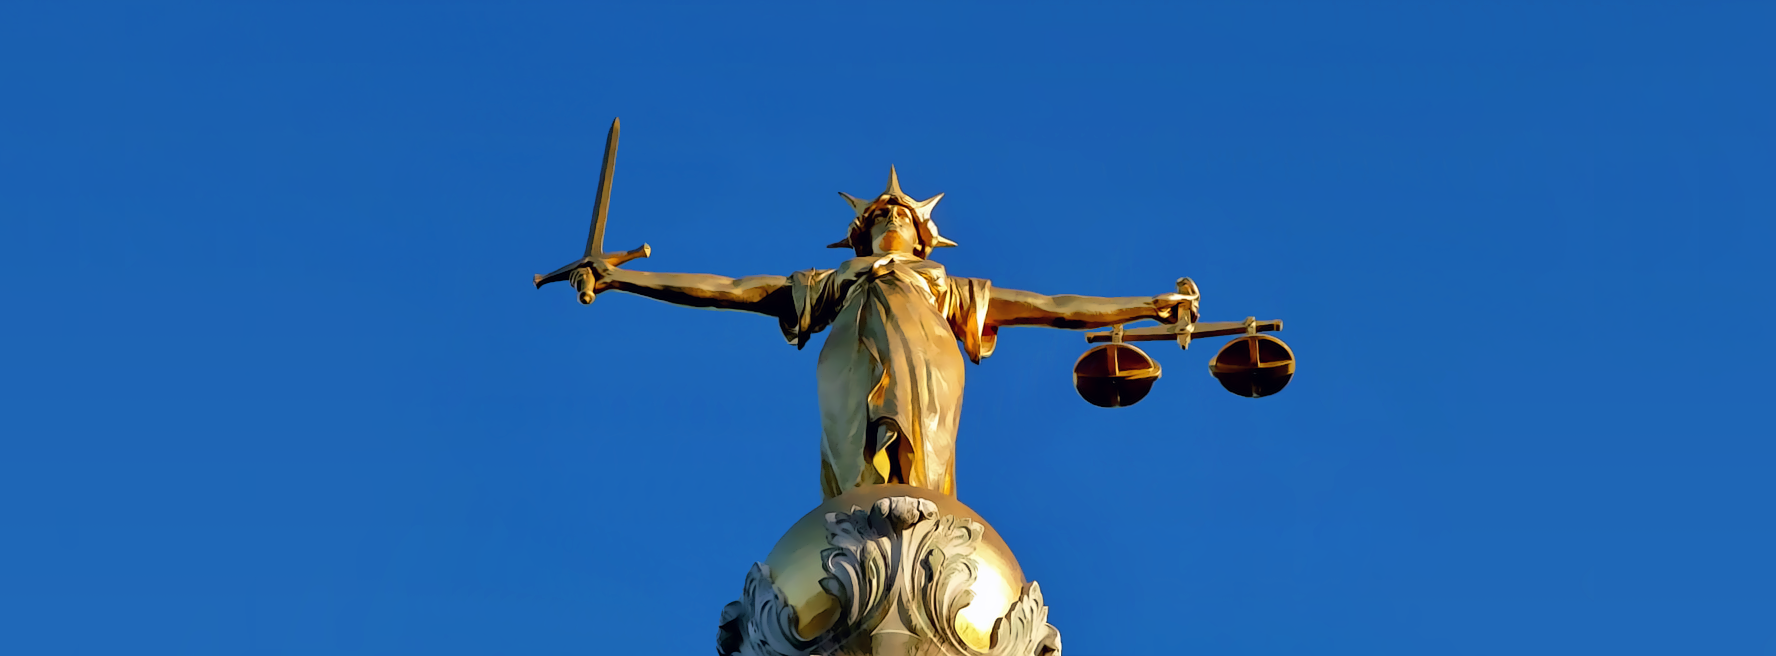 http://upload.wikimedia.org/wikipedia/commons/f/f7/Artists-impressions-of-Lady-Justice,_(statue_on_the_Old_Bailey,_London).png